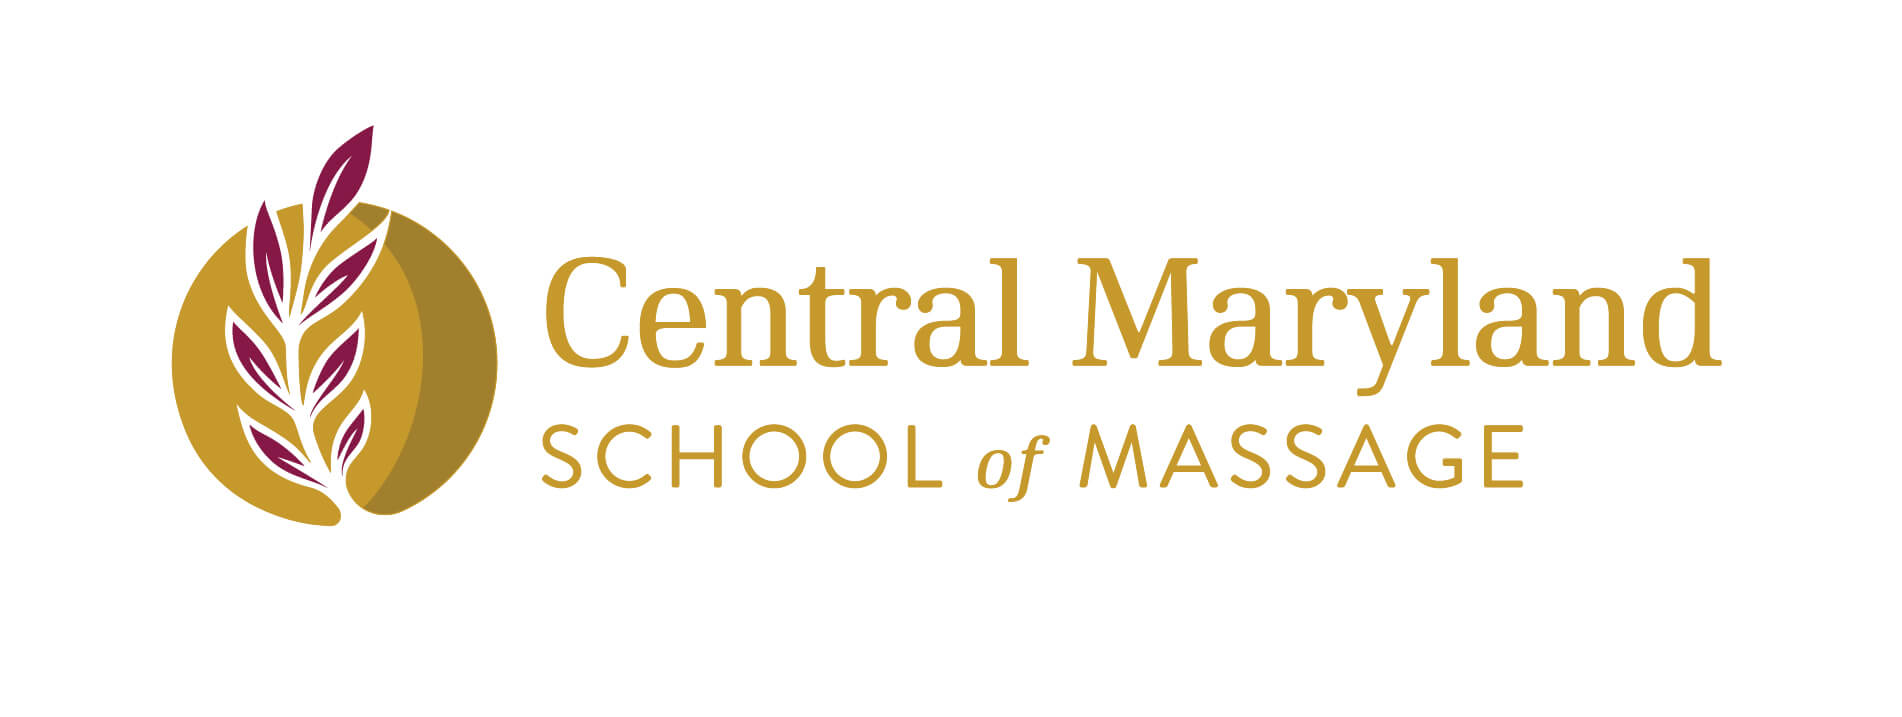 Central Maryland School of Massage